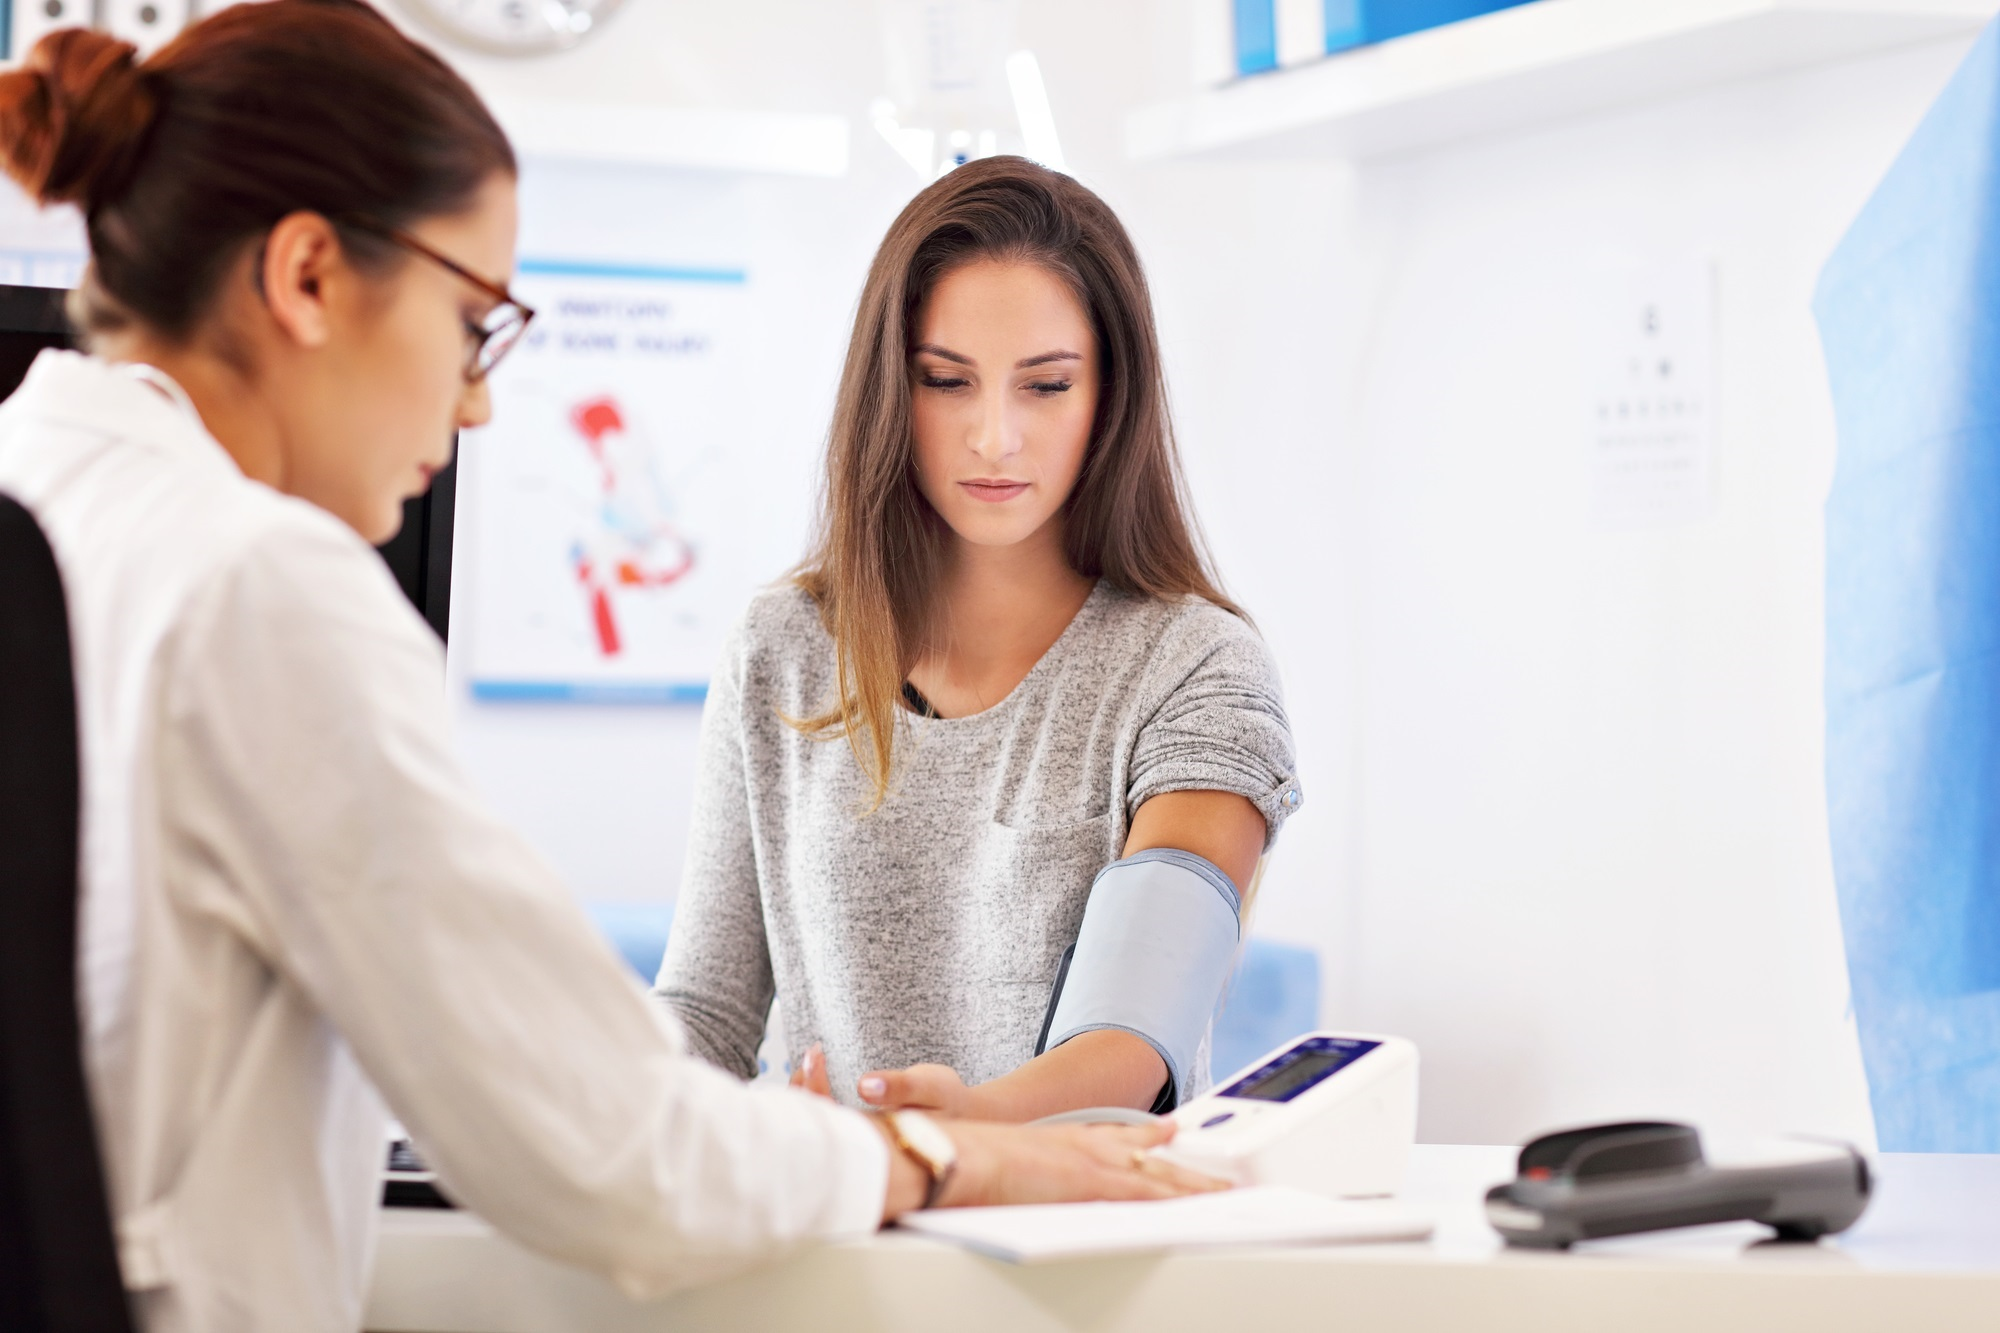 5 Tips to Make Your Gynecologist Appointment More